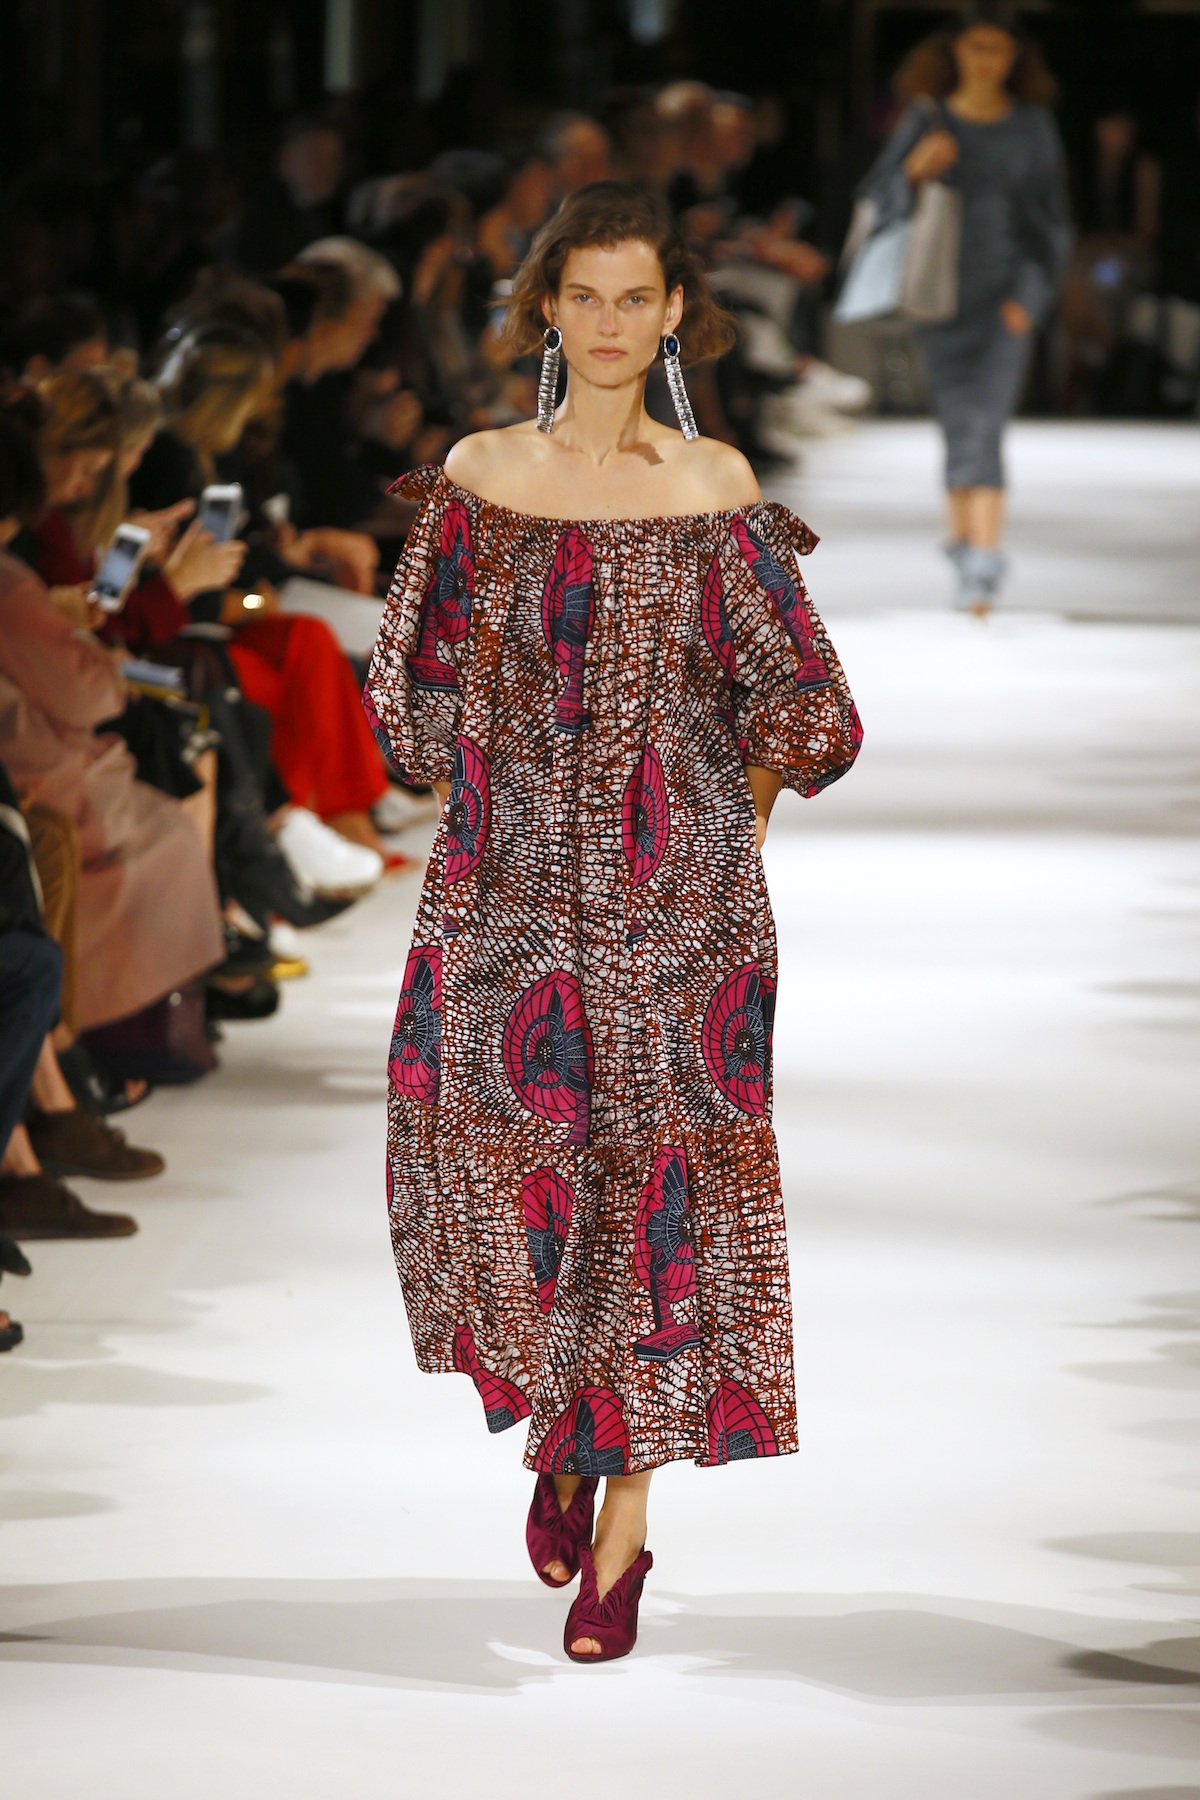 1e5cf1ec4a1 On Wednesdays We Wear Prints  Fashion Rules in the African Atlantic ...